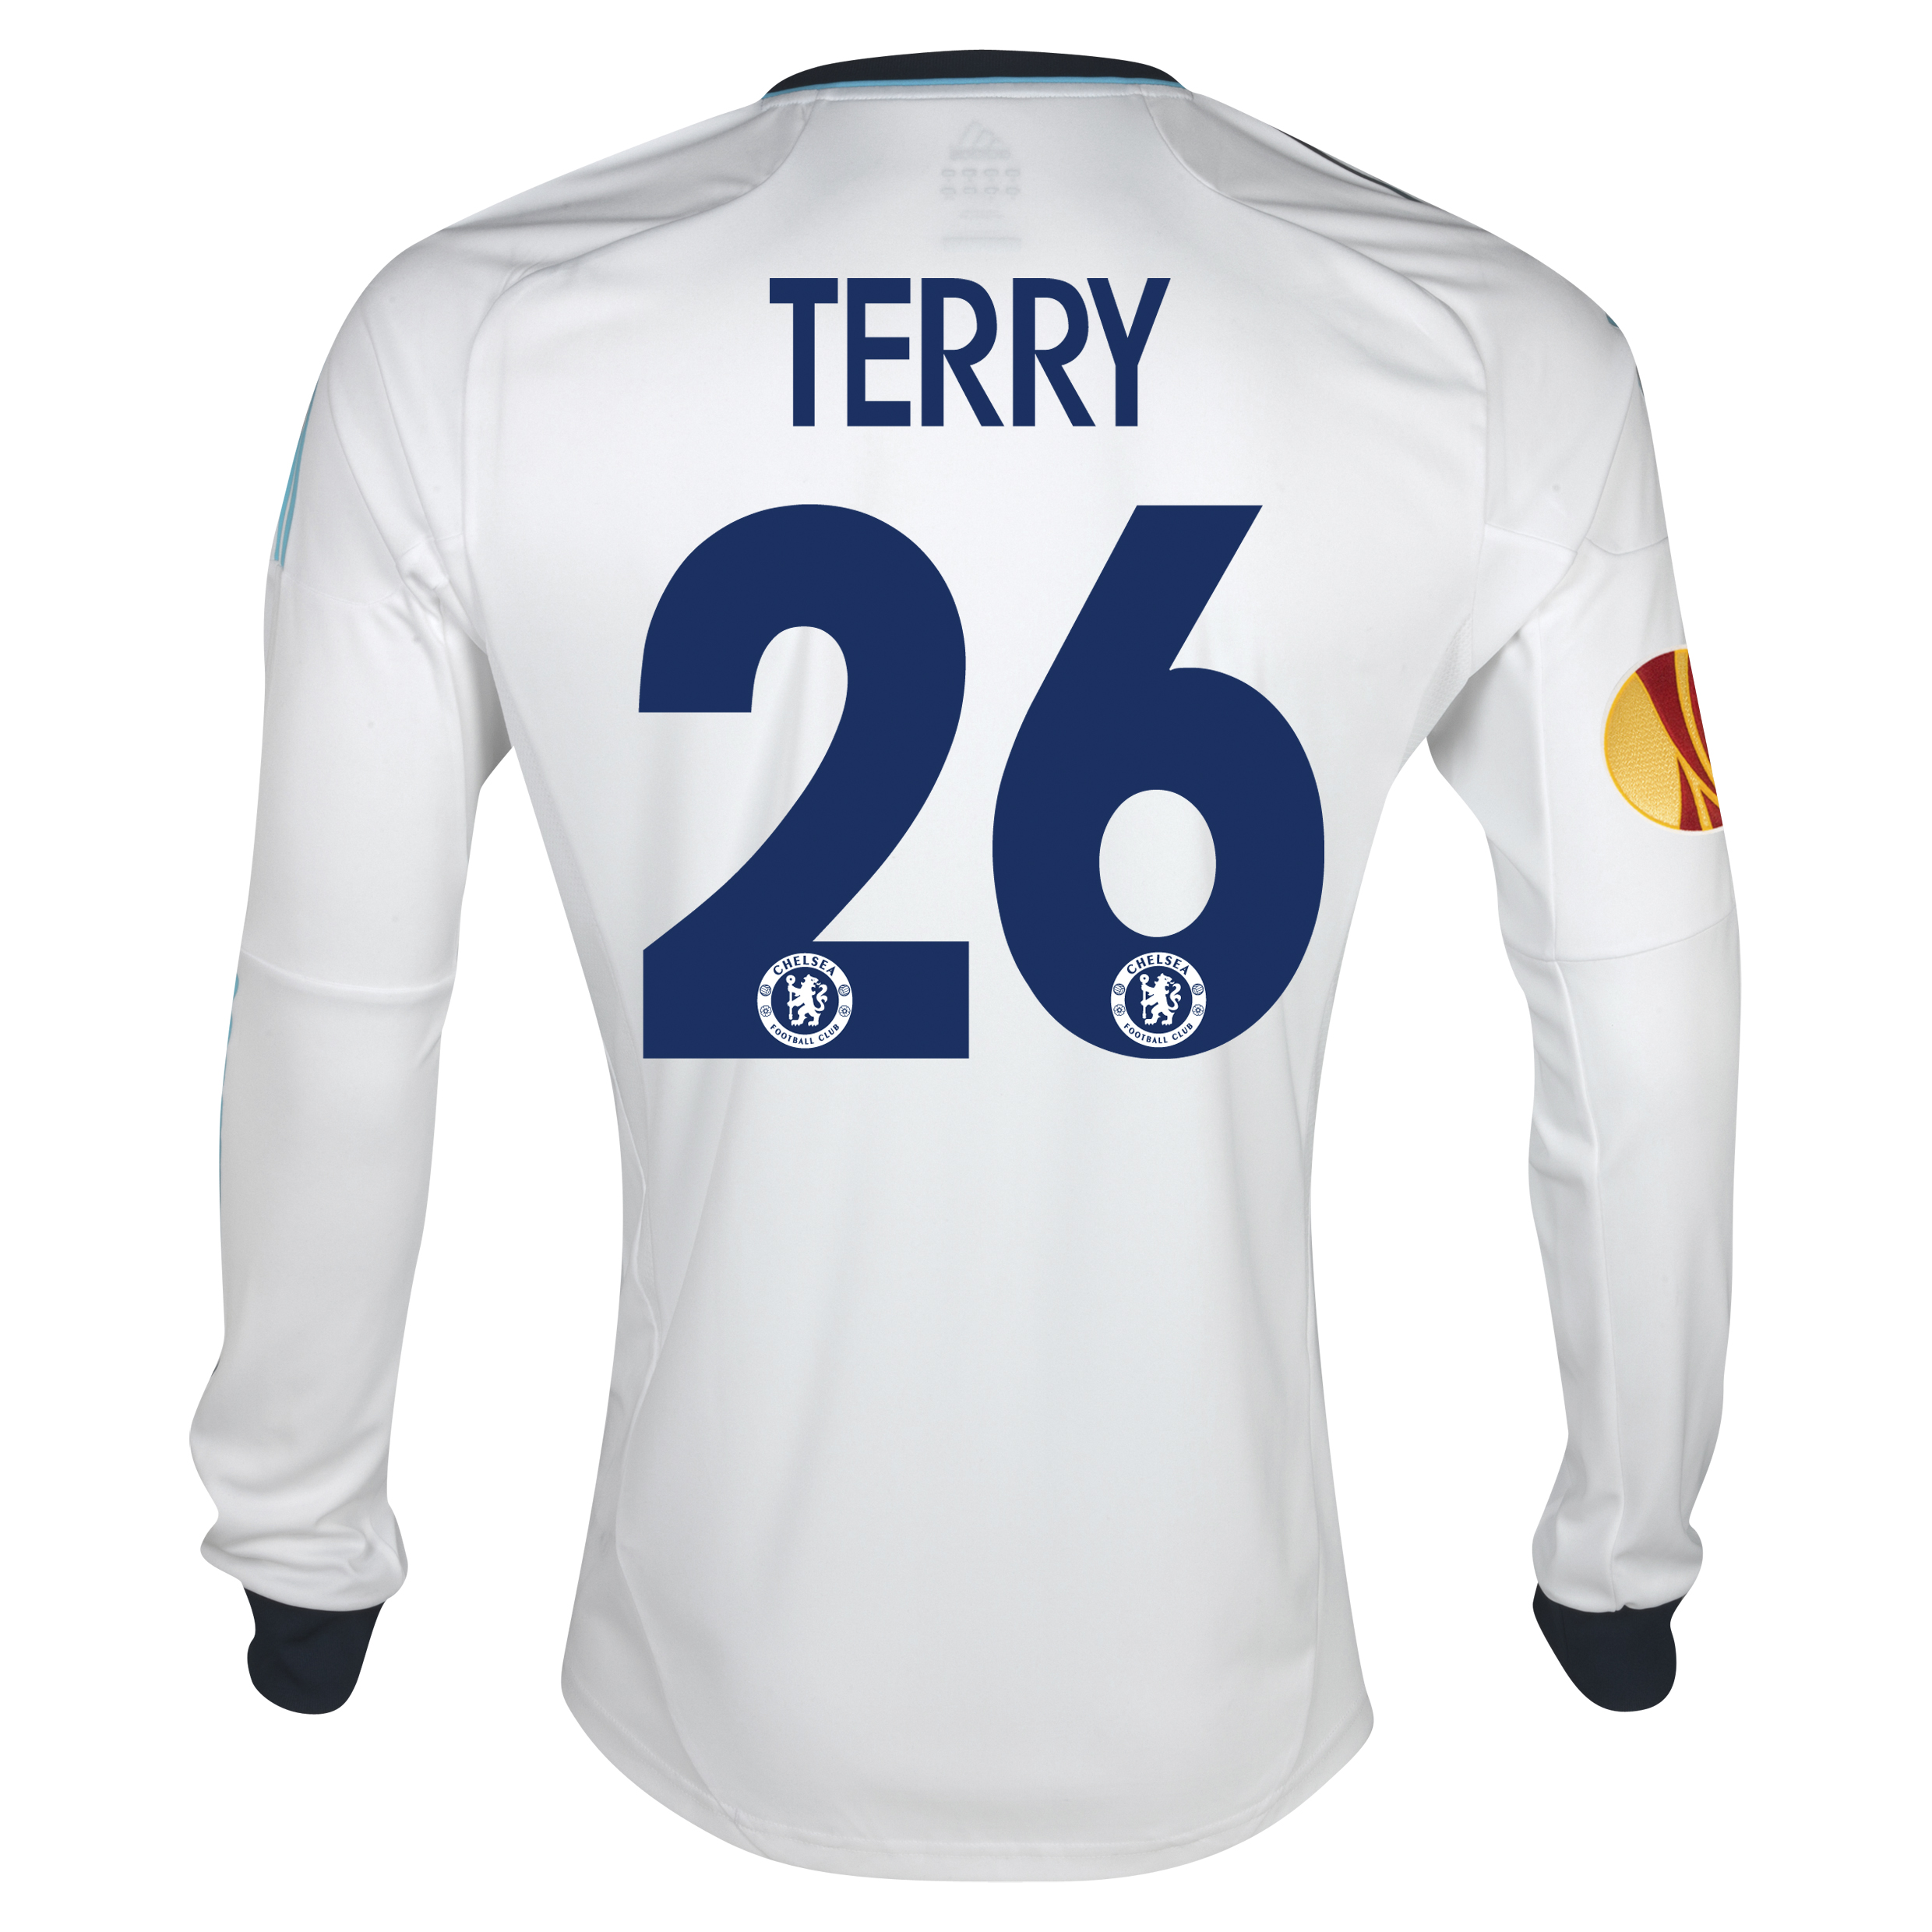 Chelsea UEFA Europa League Away Shirt 2012/13 - Long Sleeved  - Youths with Terry 26 printing Including Europa Badge